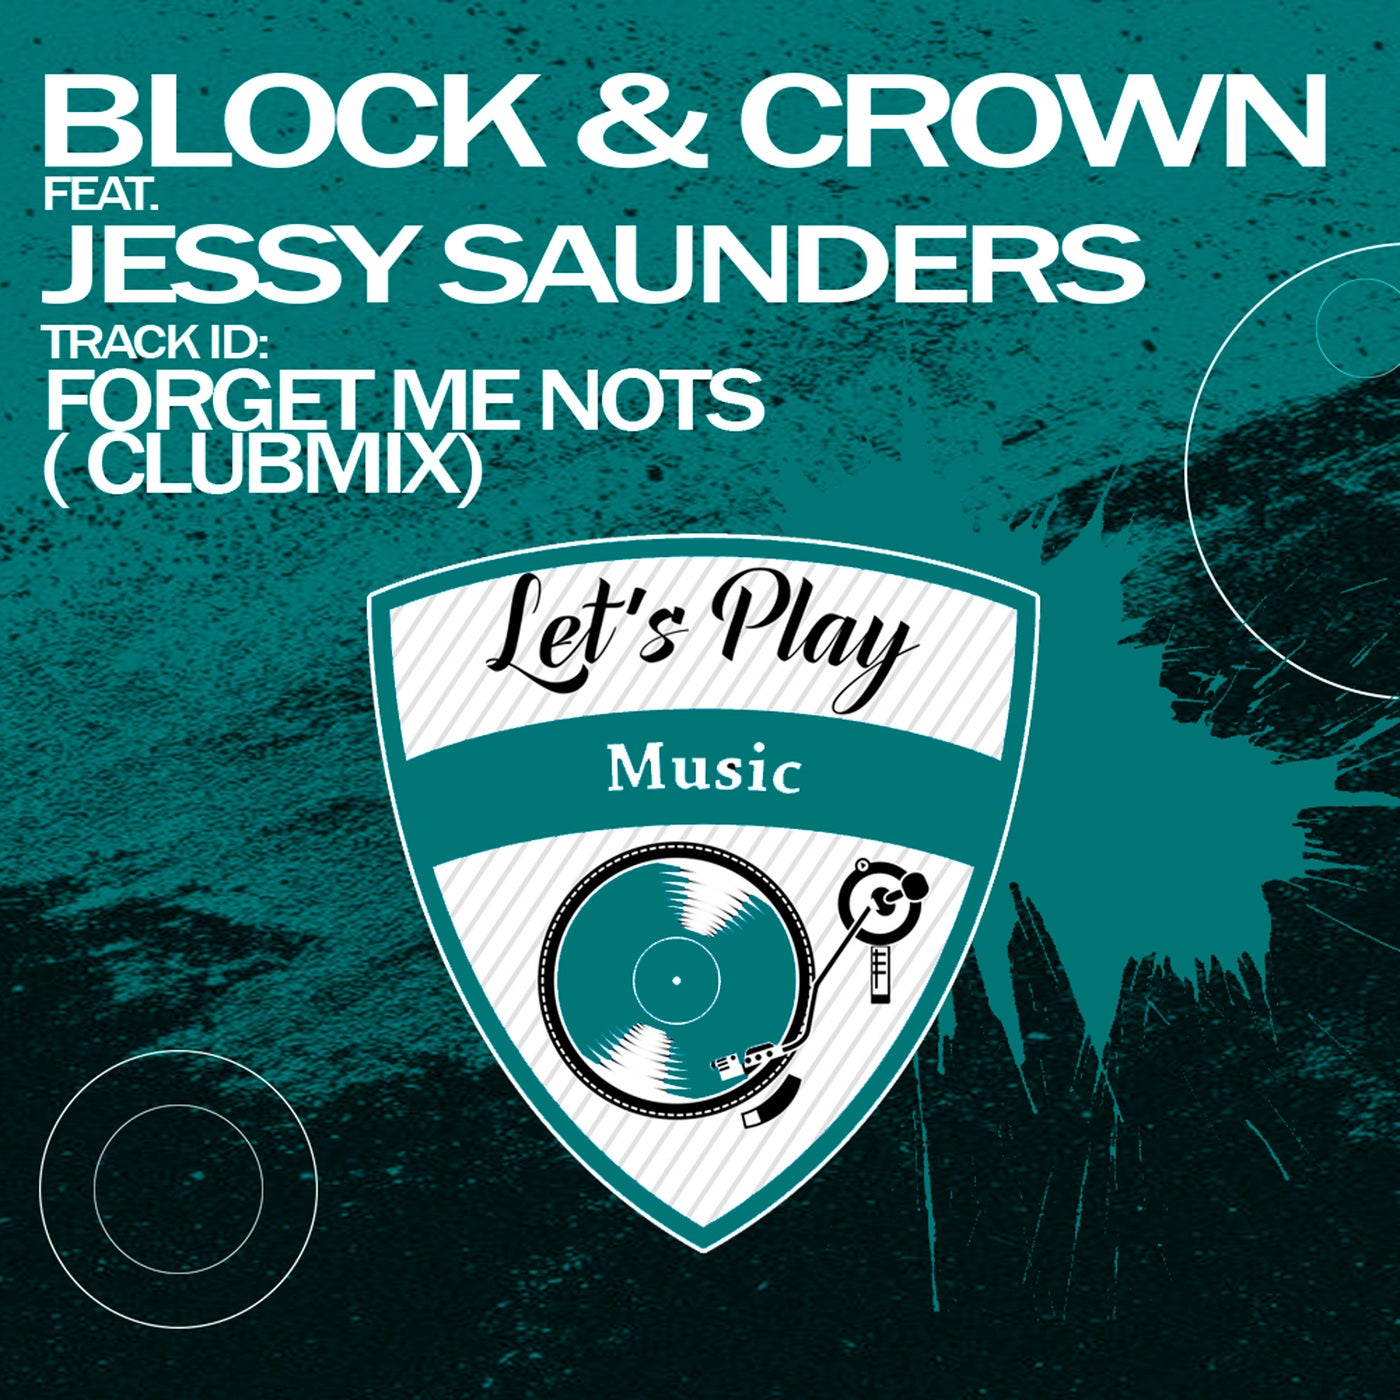 Forget Me Nots feat. Jessy Saunders (Clubmix)